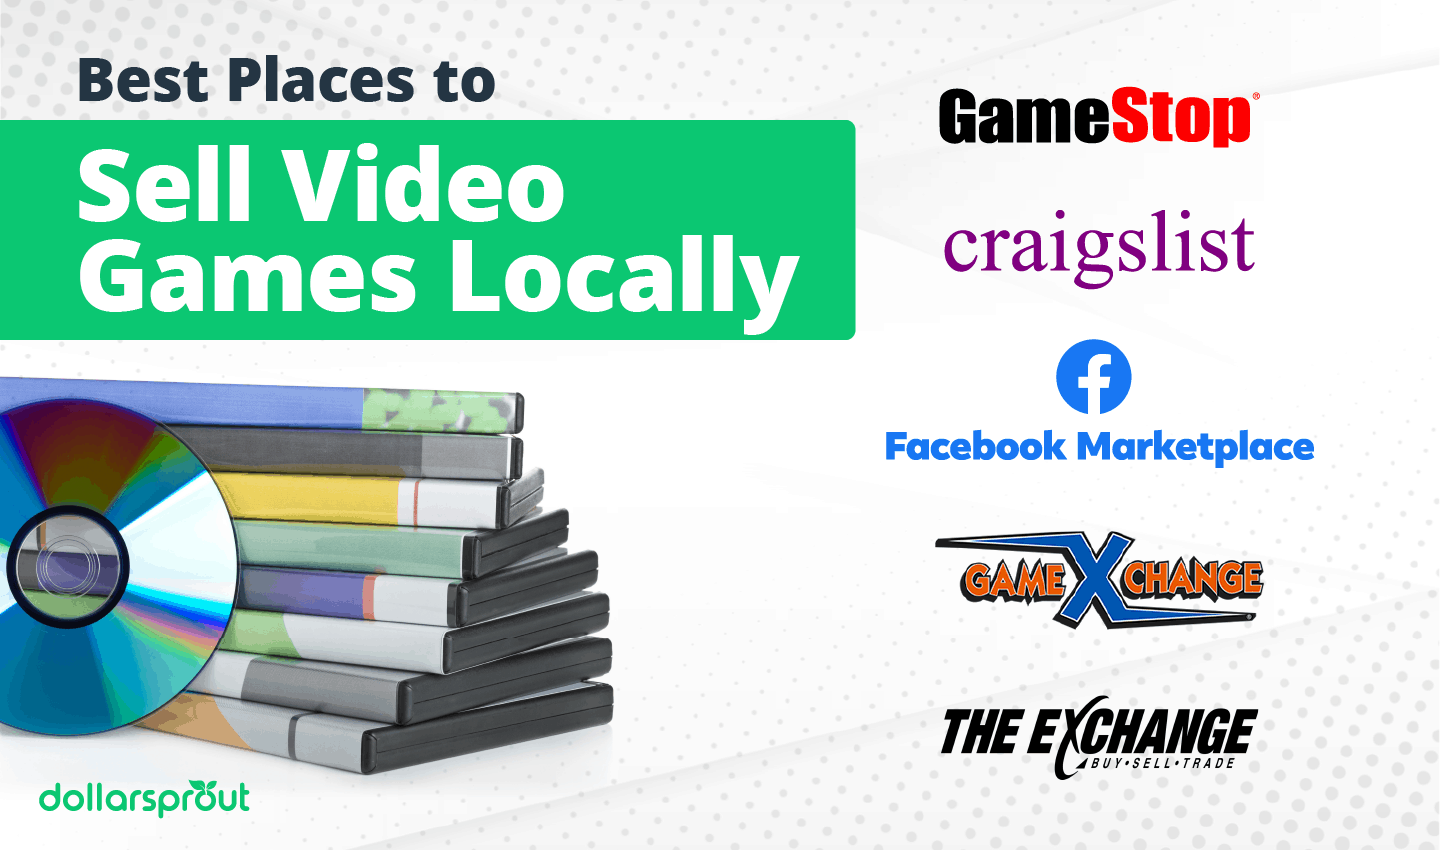 Best Places to Sell Video Games Locally